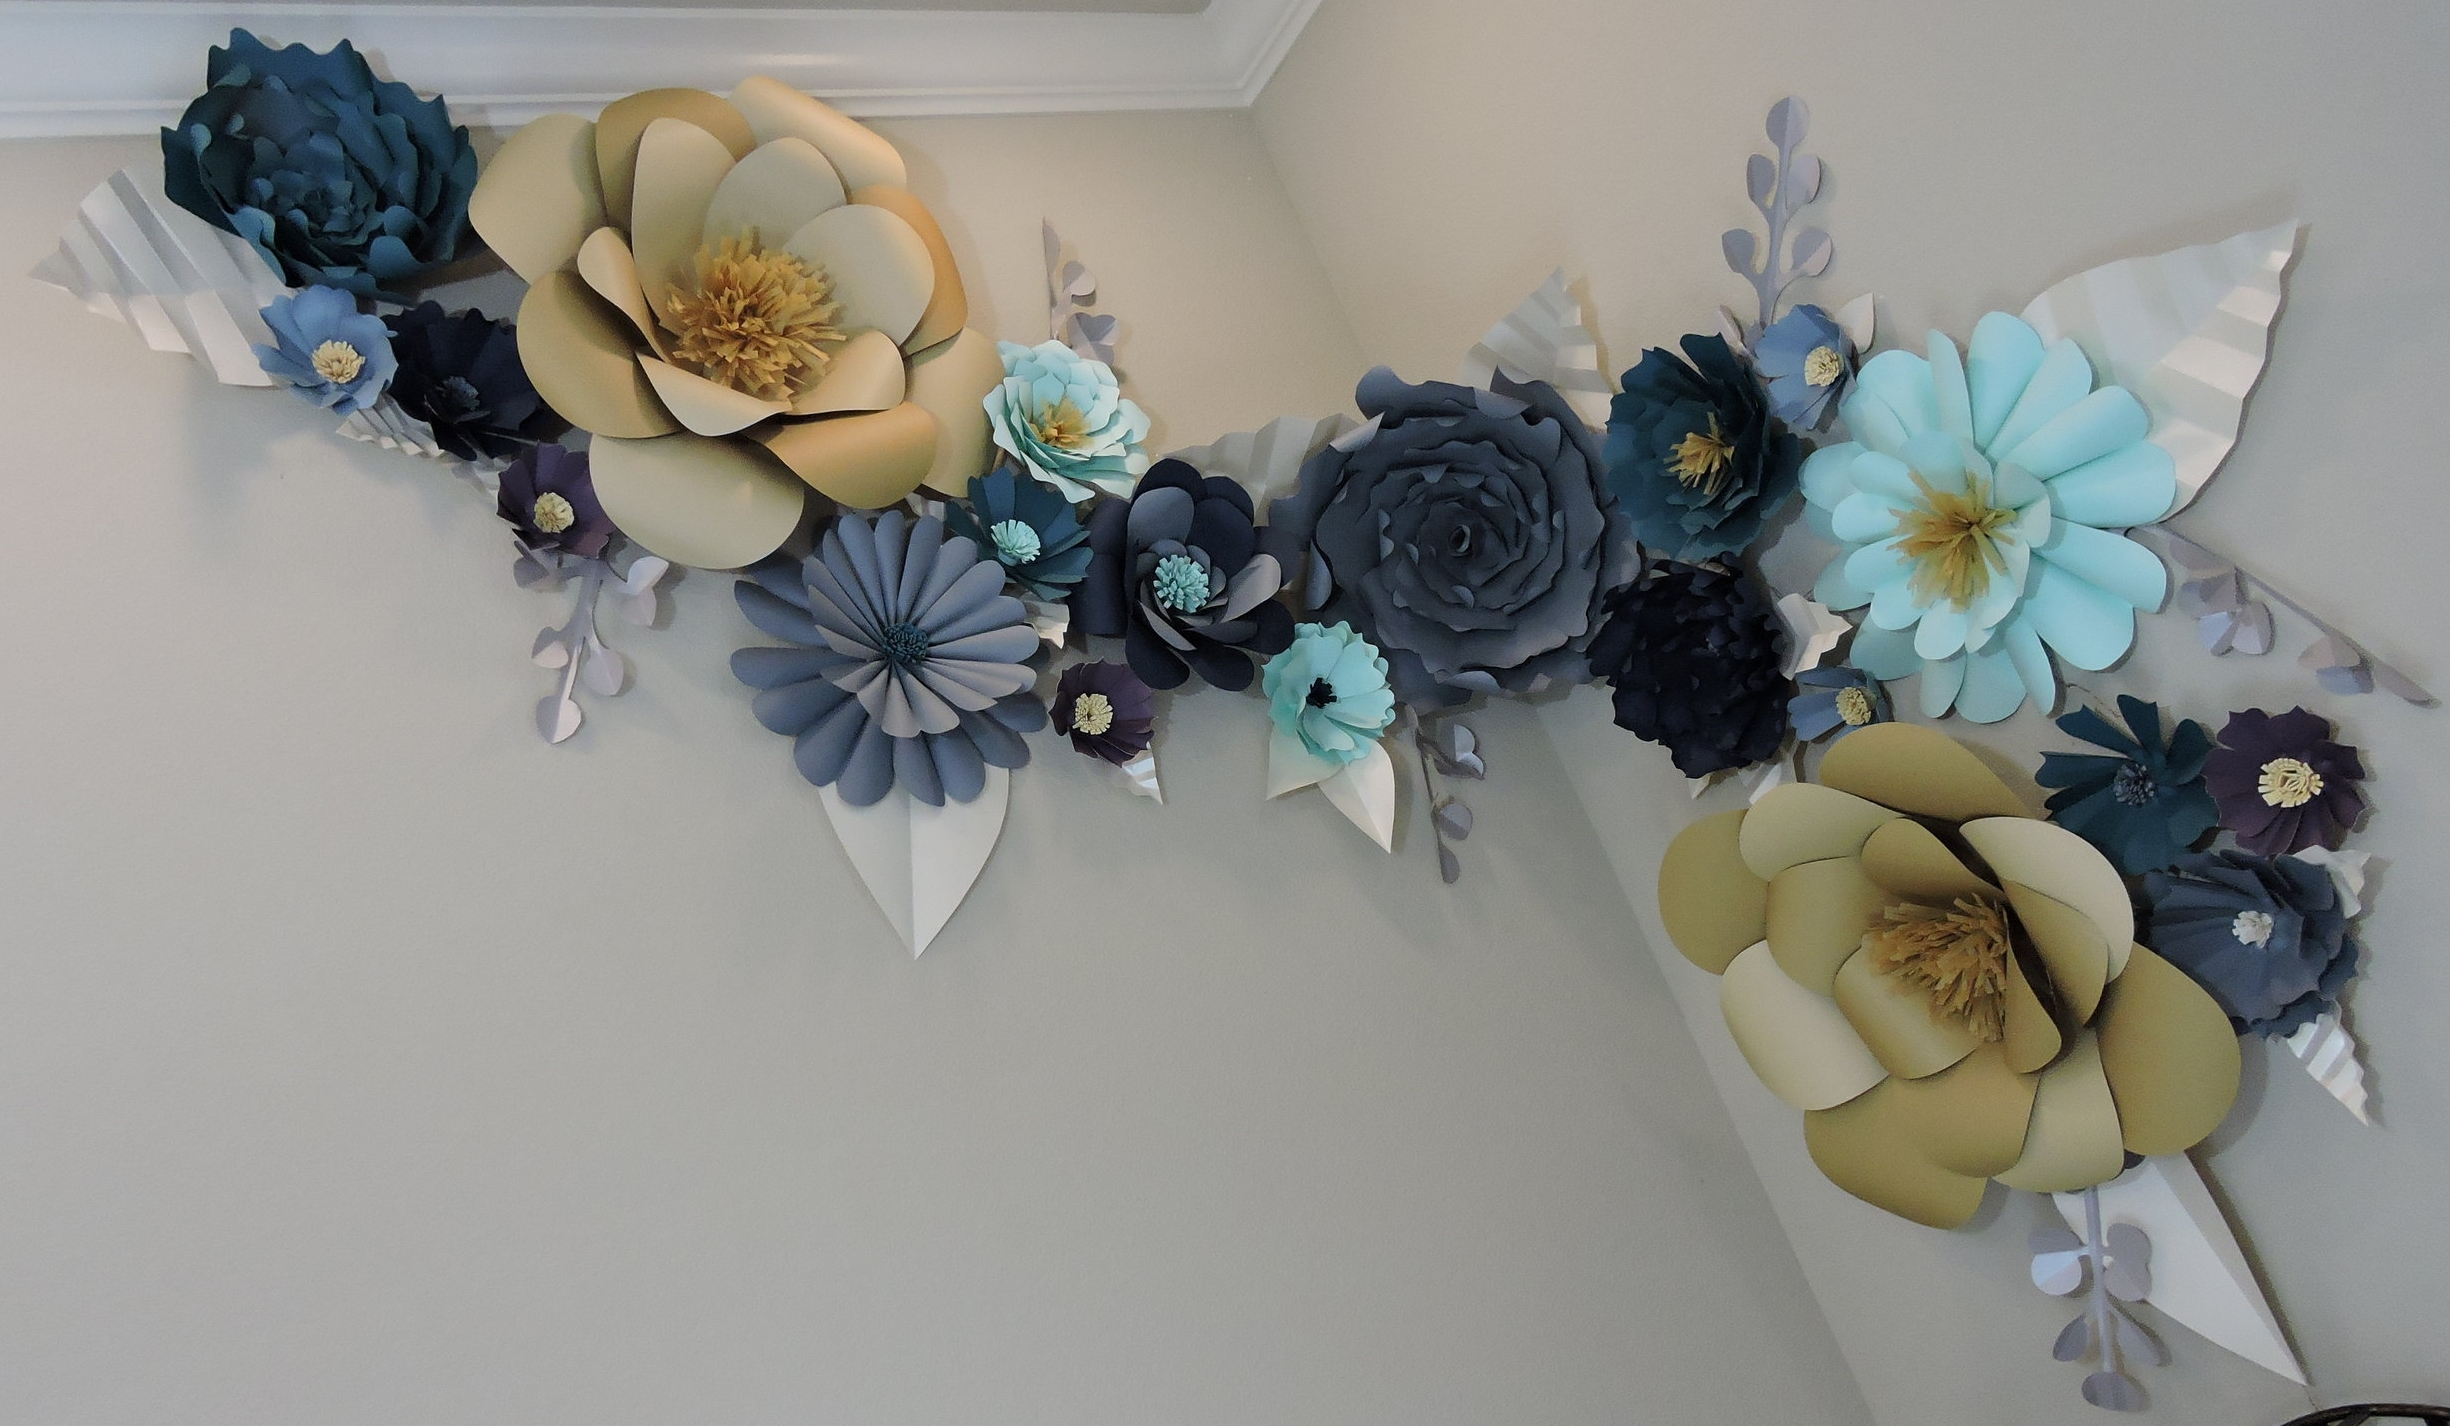 Giant Paper Flowers, by Blue Fox Crafts 2017